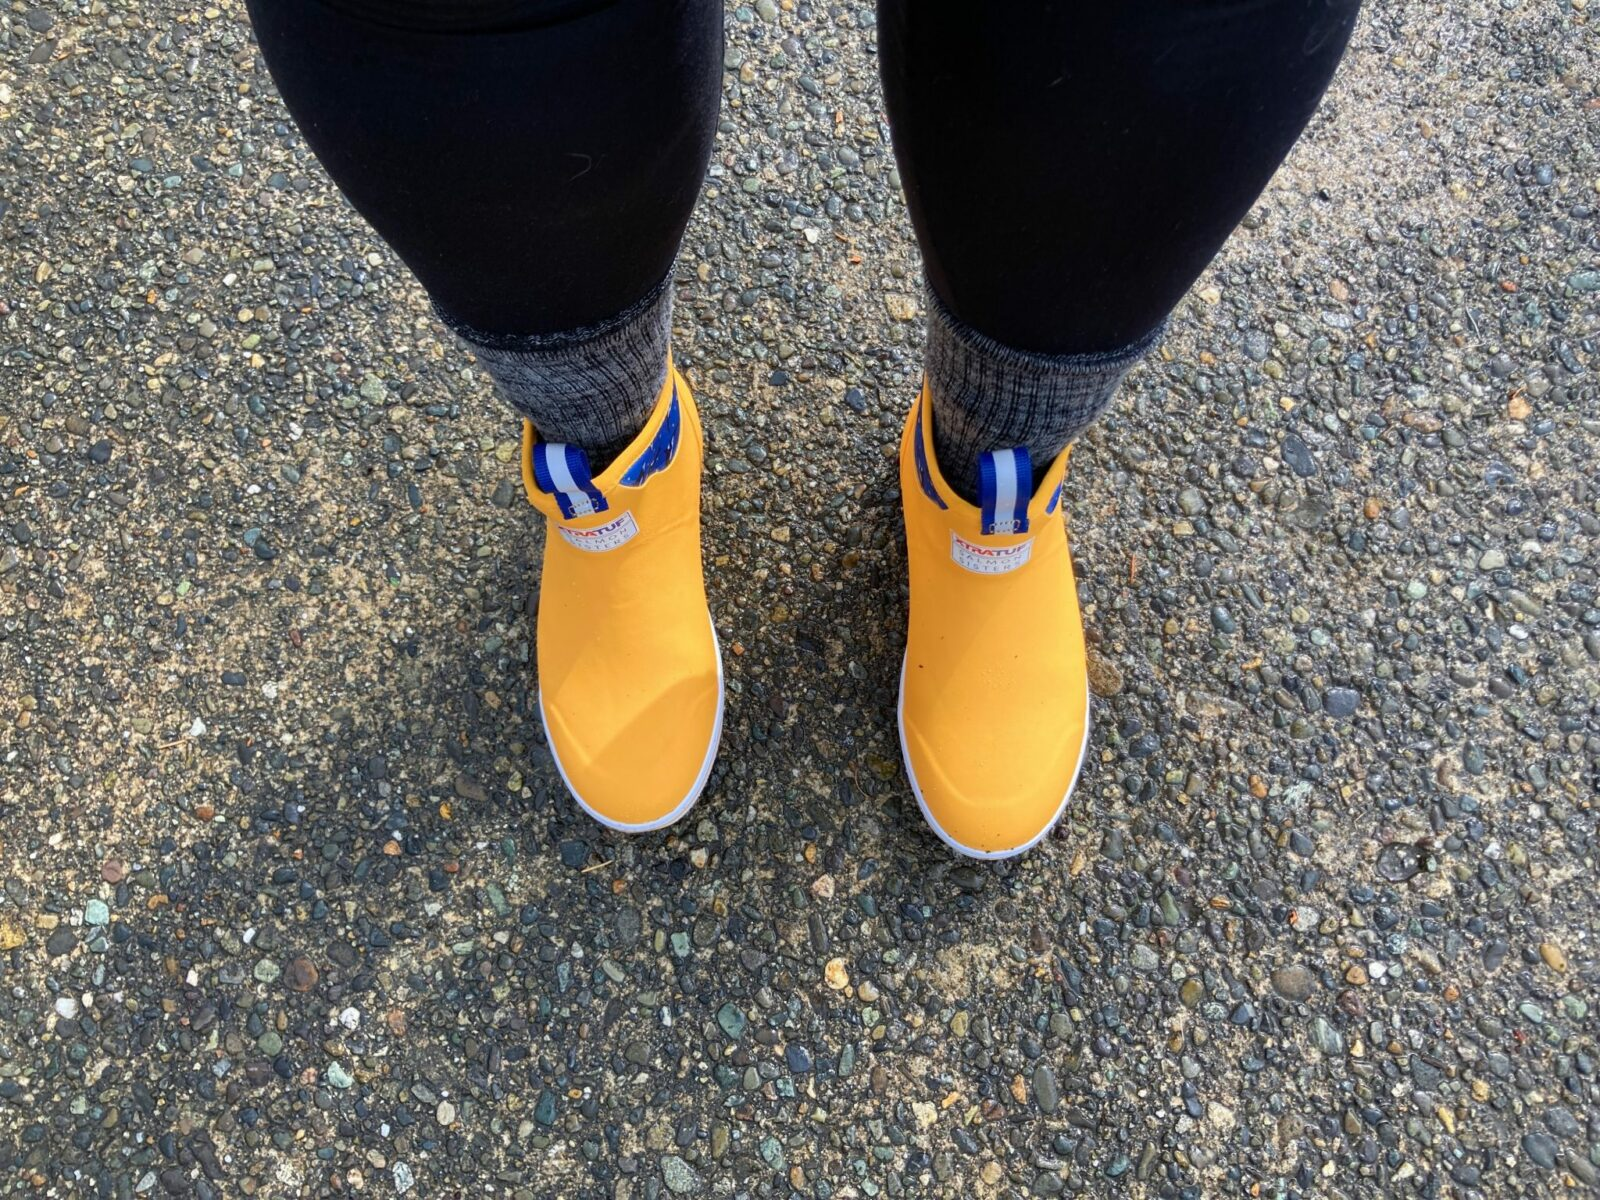 An important consideration in what to pack for seattle is waterproof footwear. These bright yellow waterproof ankle boots are my favorite!